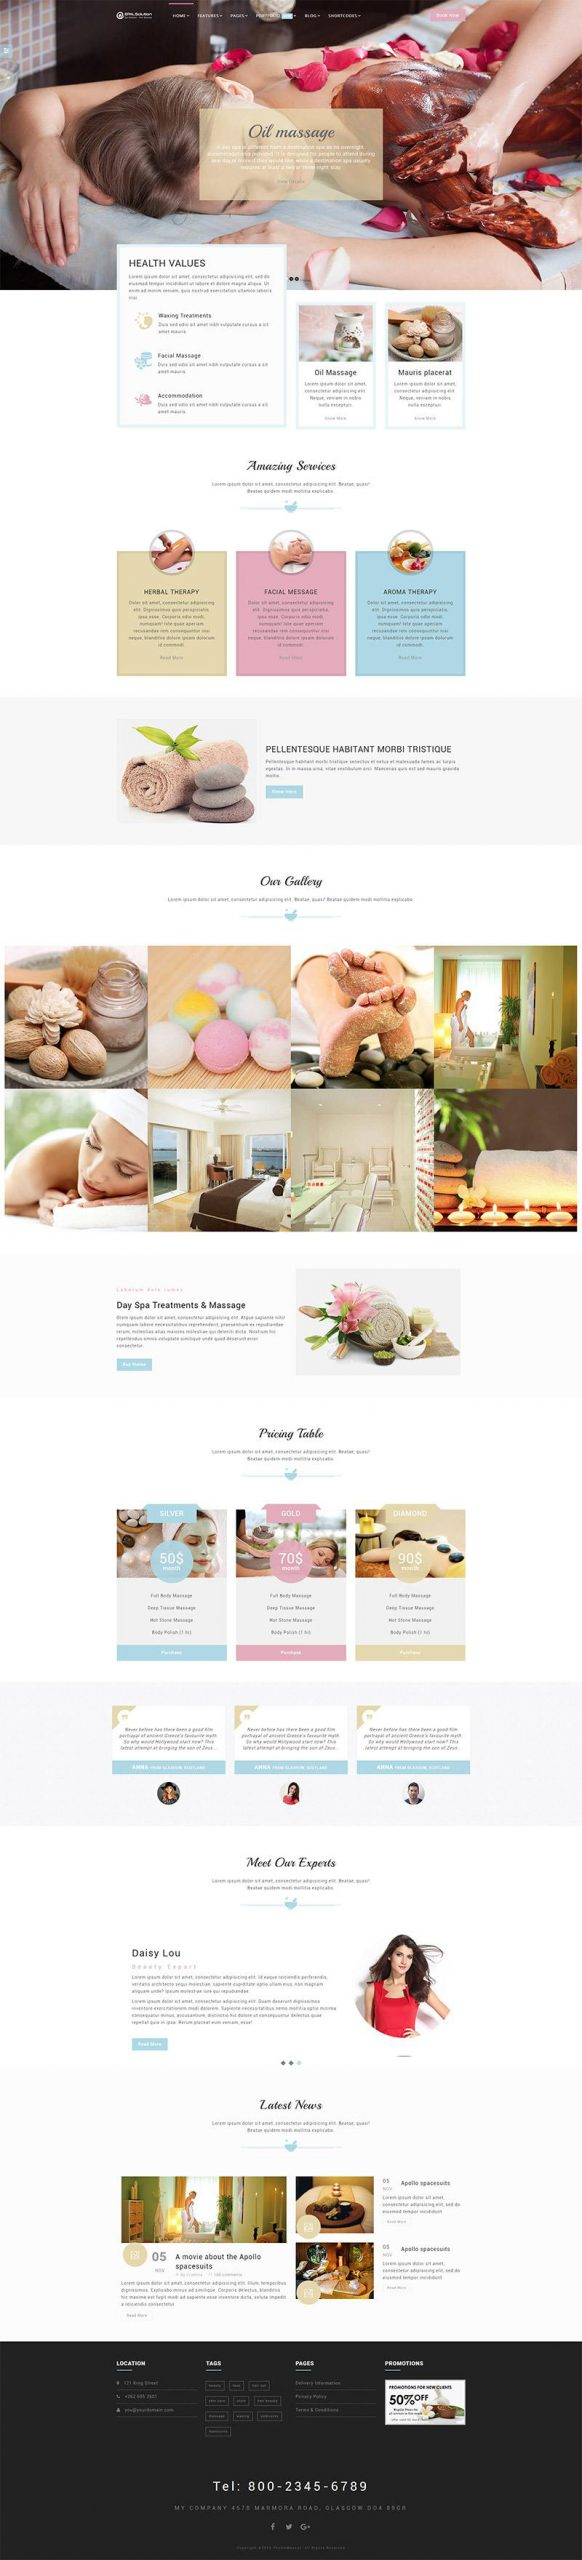 Giao diện website Royal SPA